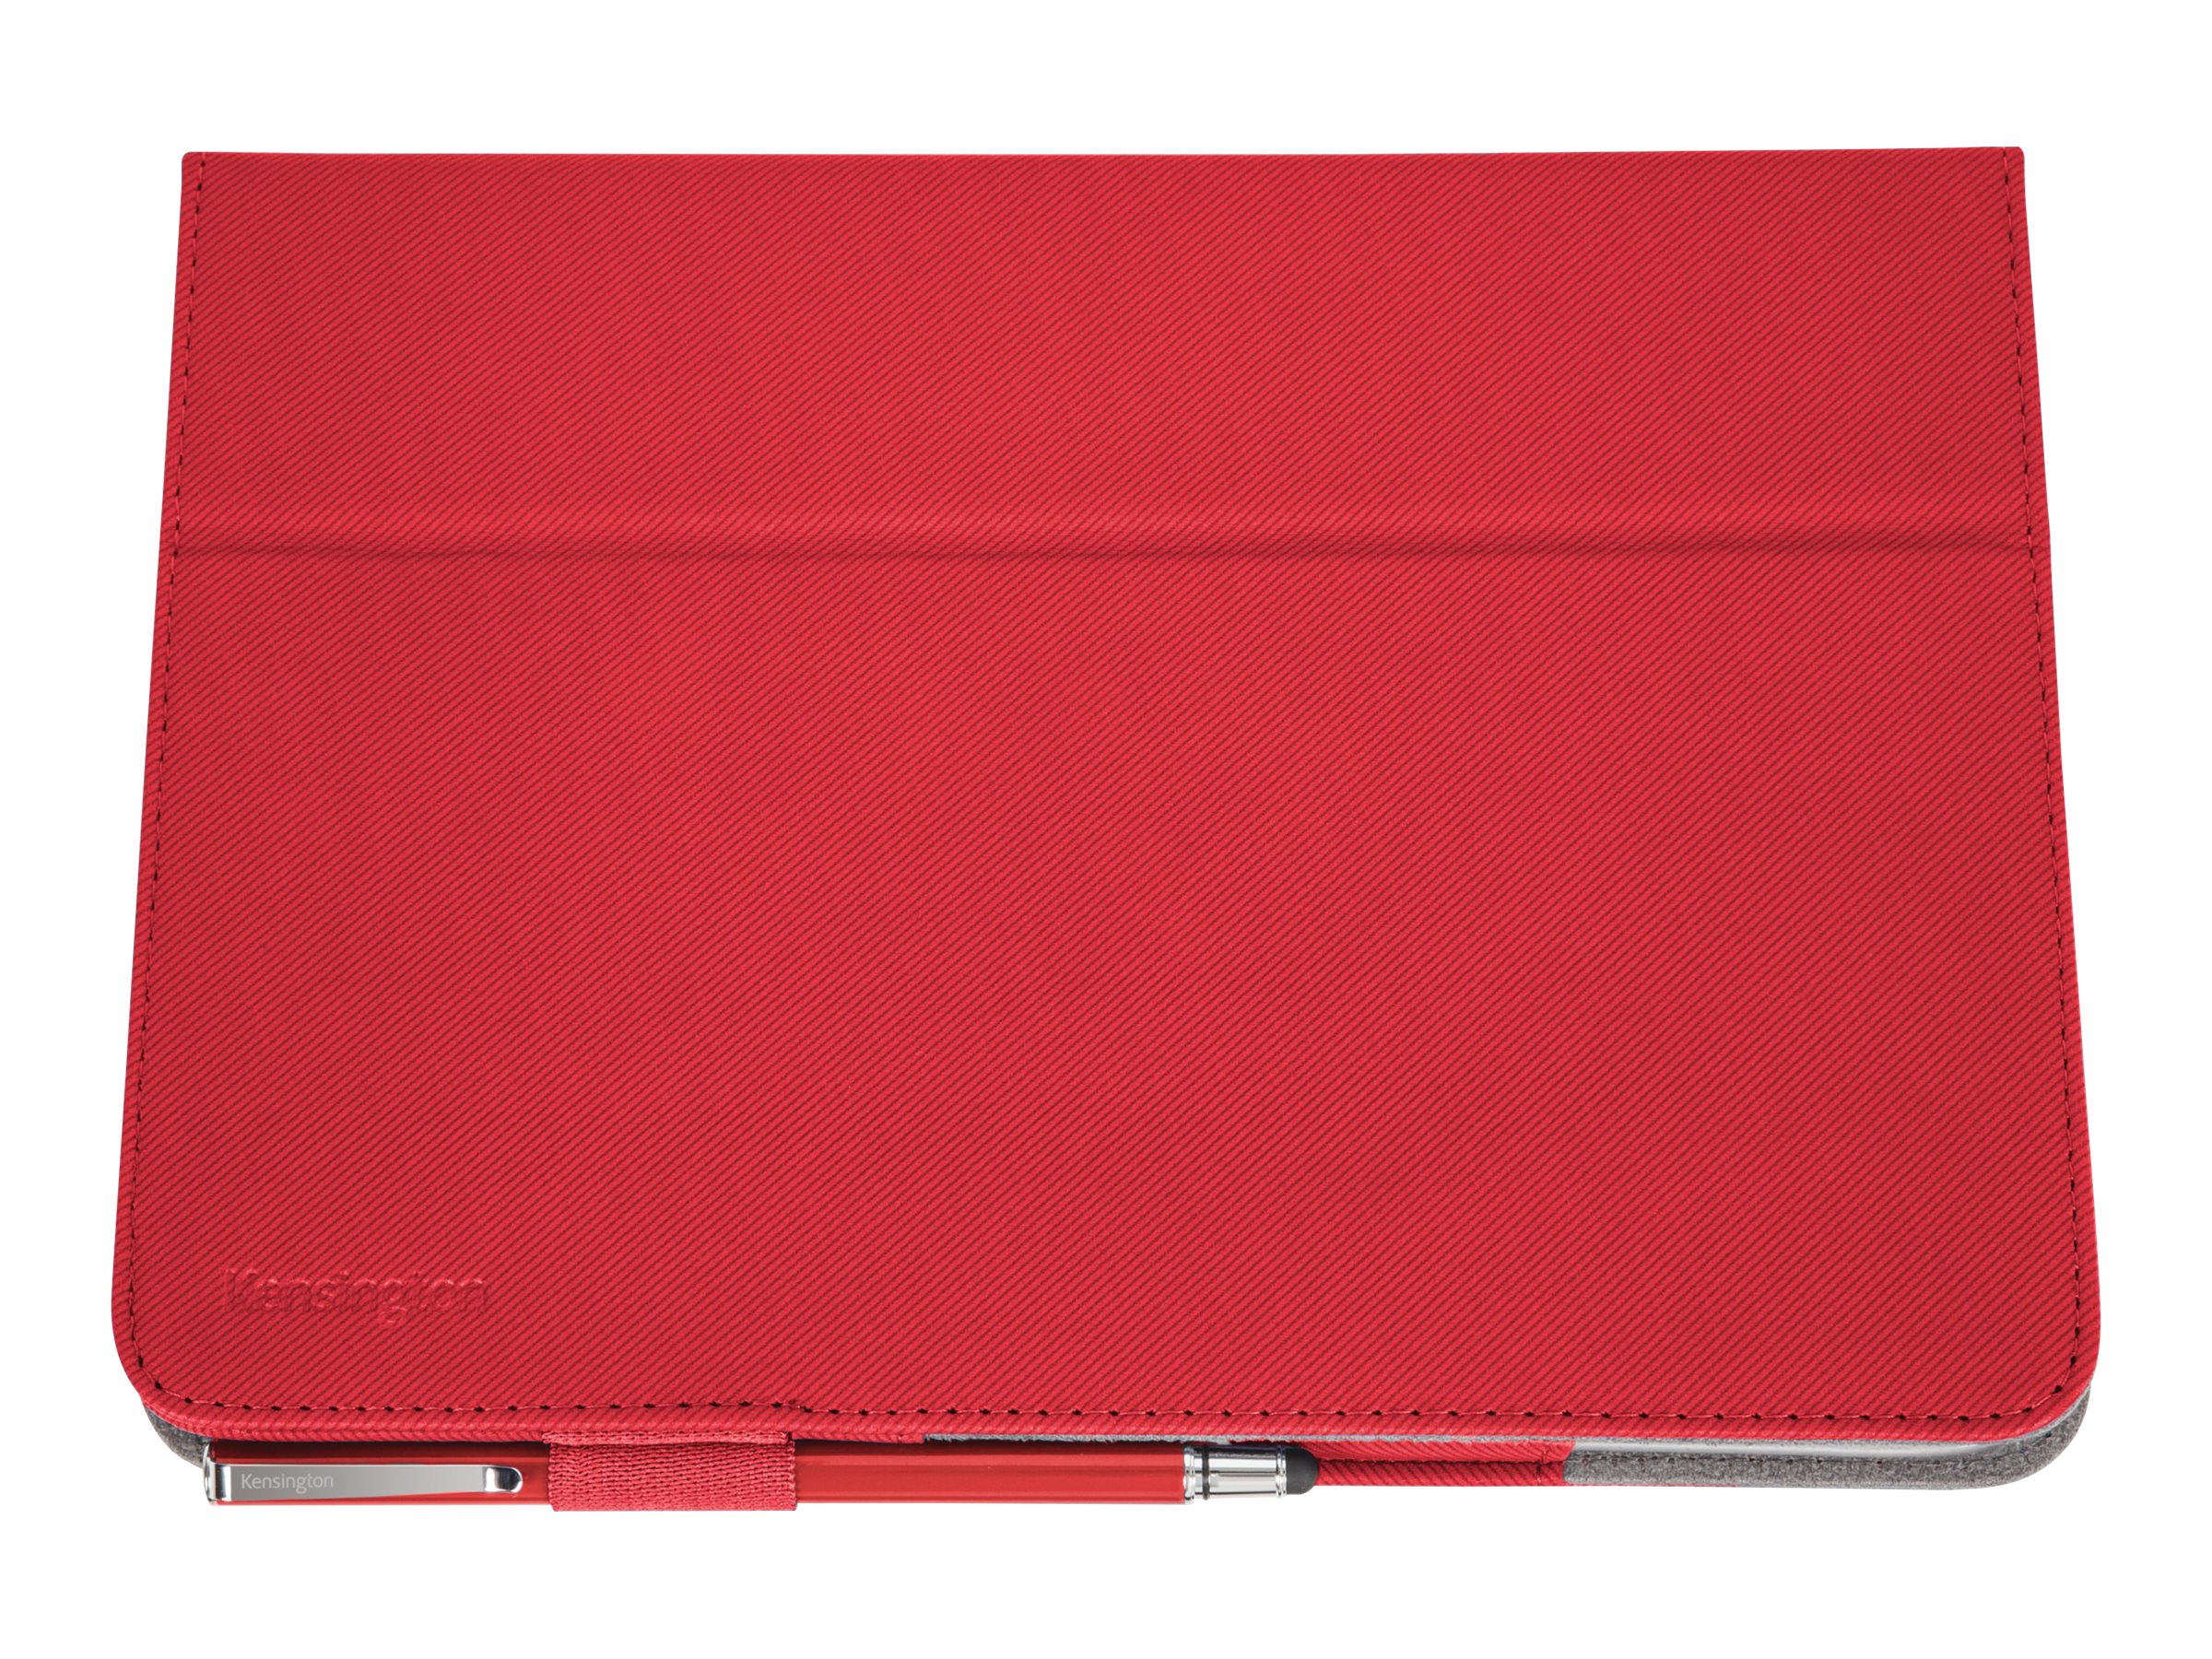 Kensington Comercio Soft Folio Case & Stand for Galaxy Tab 3 10.1, Red, K97113WW